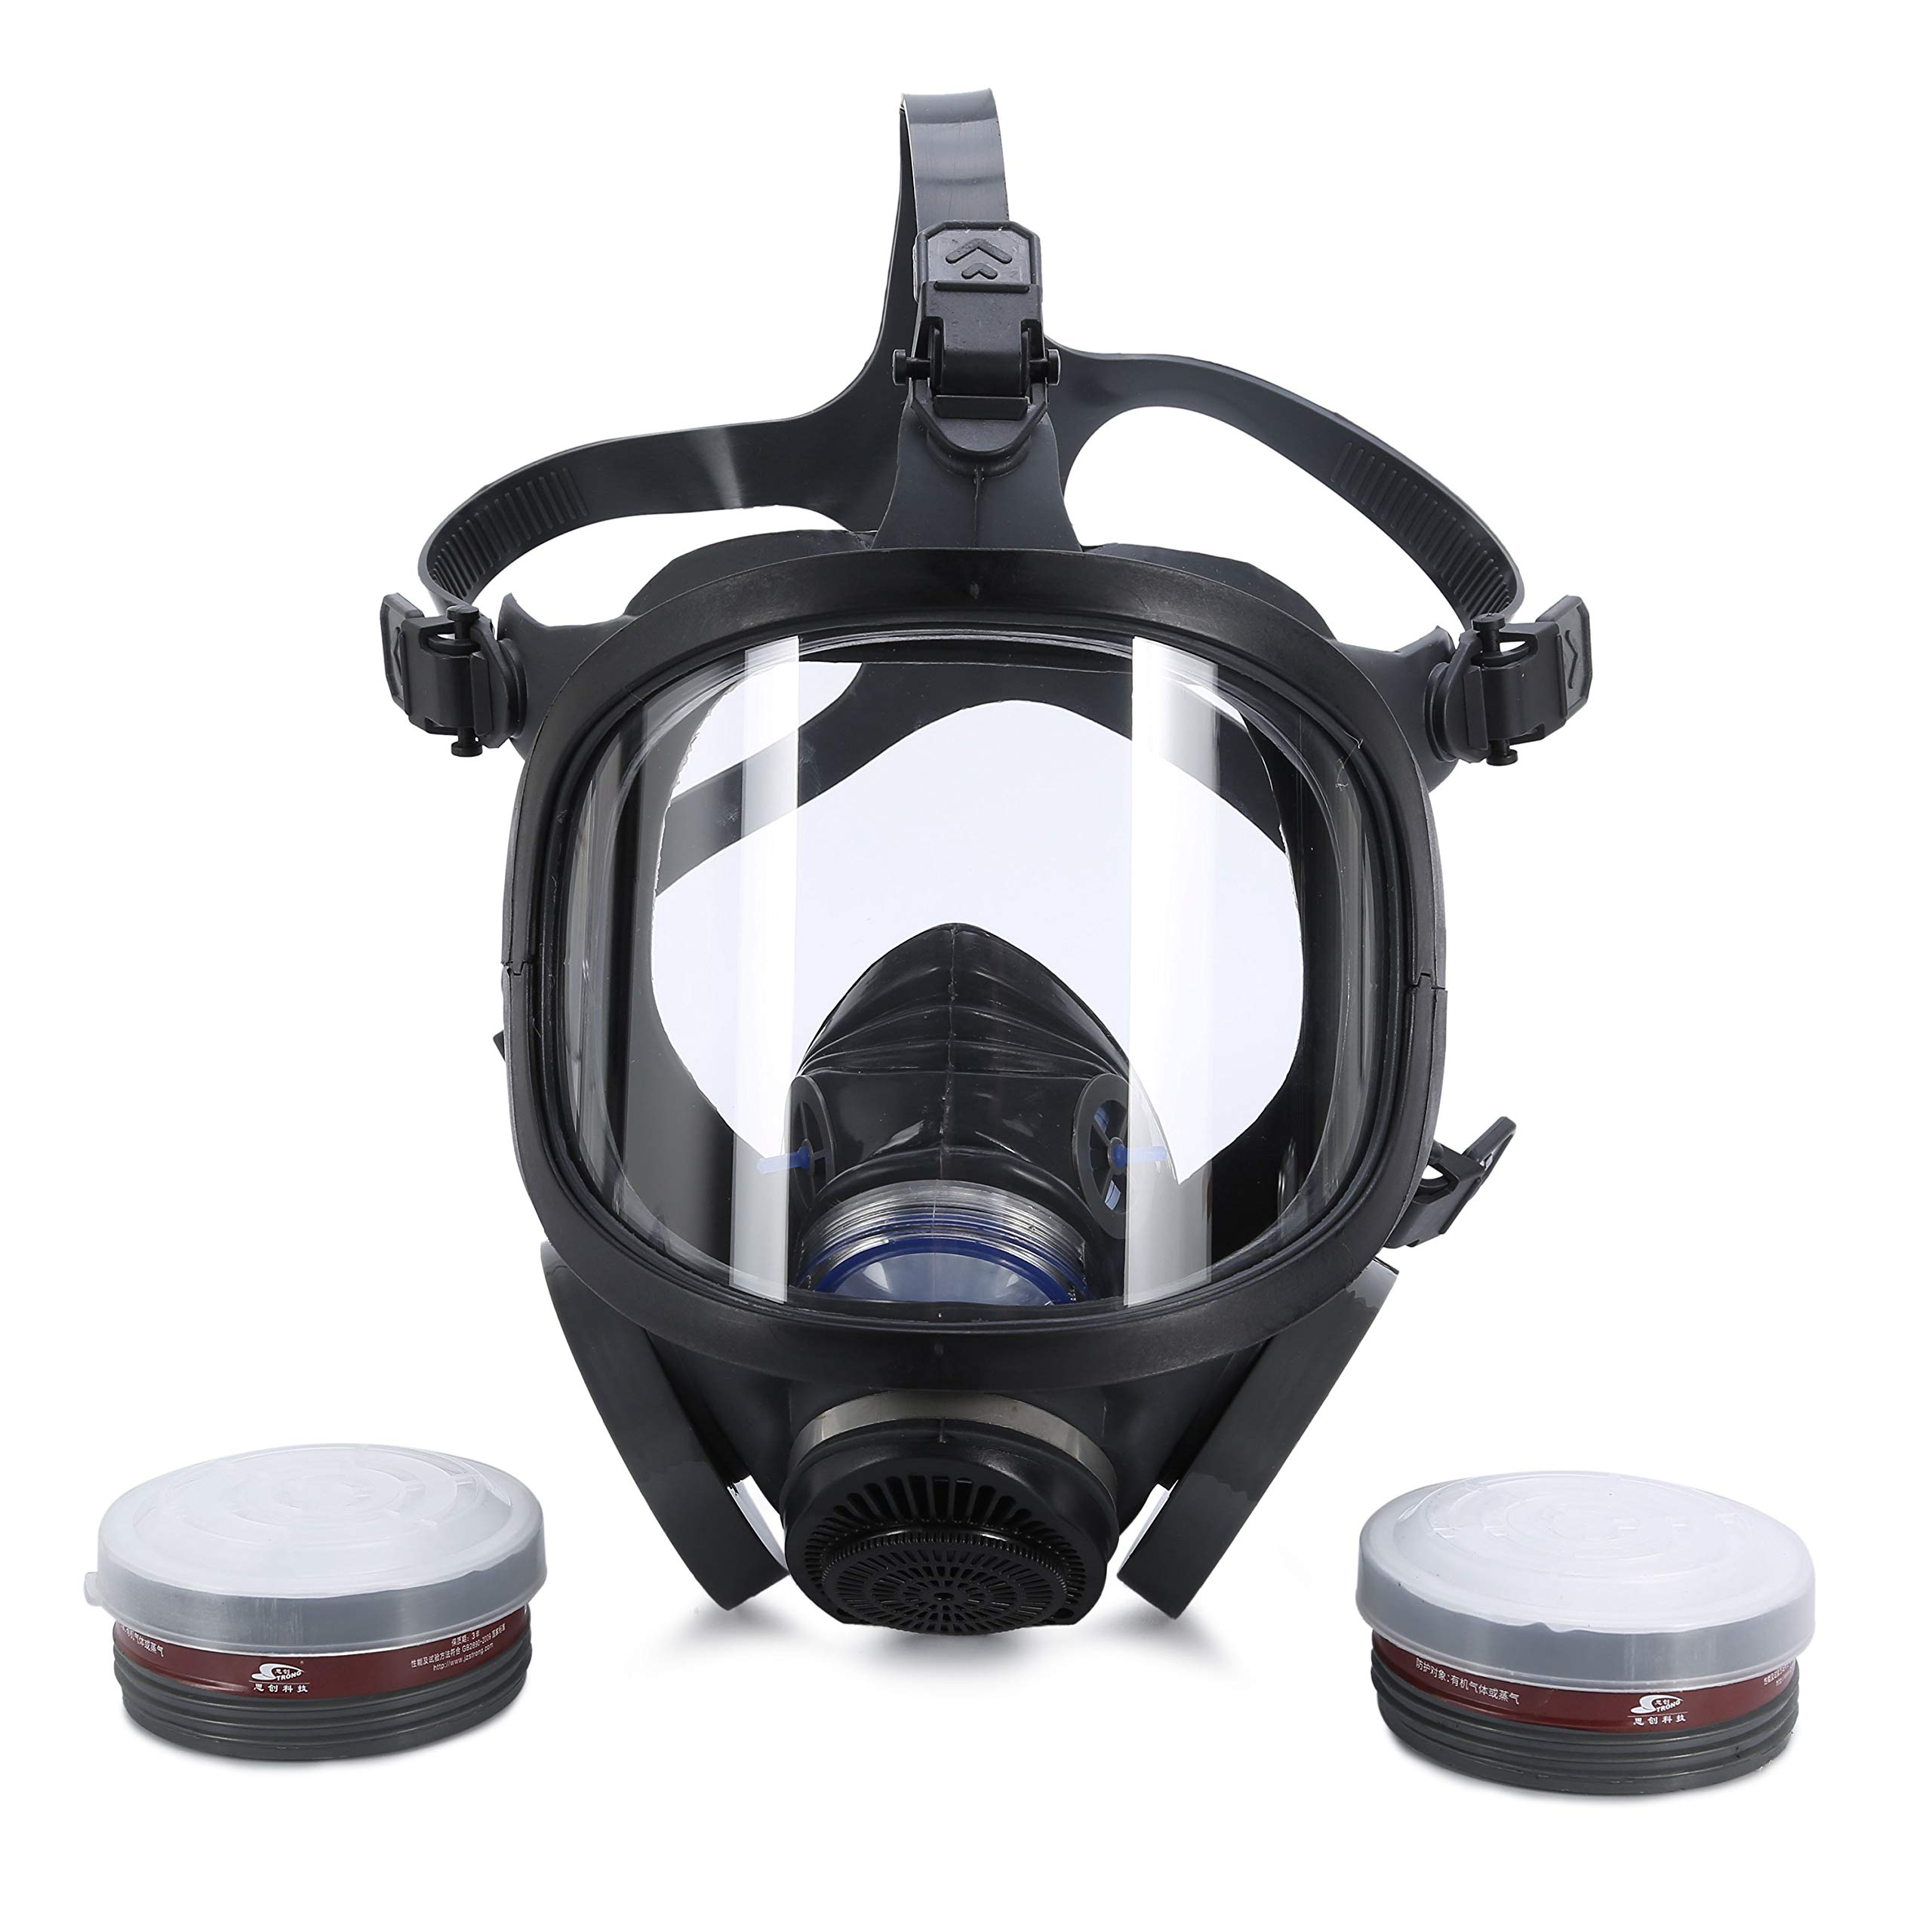 Holulo ST-M70-3 Organic Full Face Respirator Safety Mask (ST-M70-3 Mask+1 Pair 3# filter Cartridges) by Holulo (Image #2)